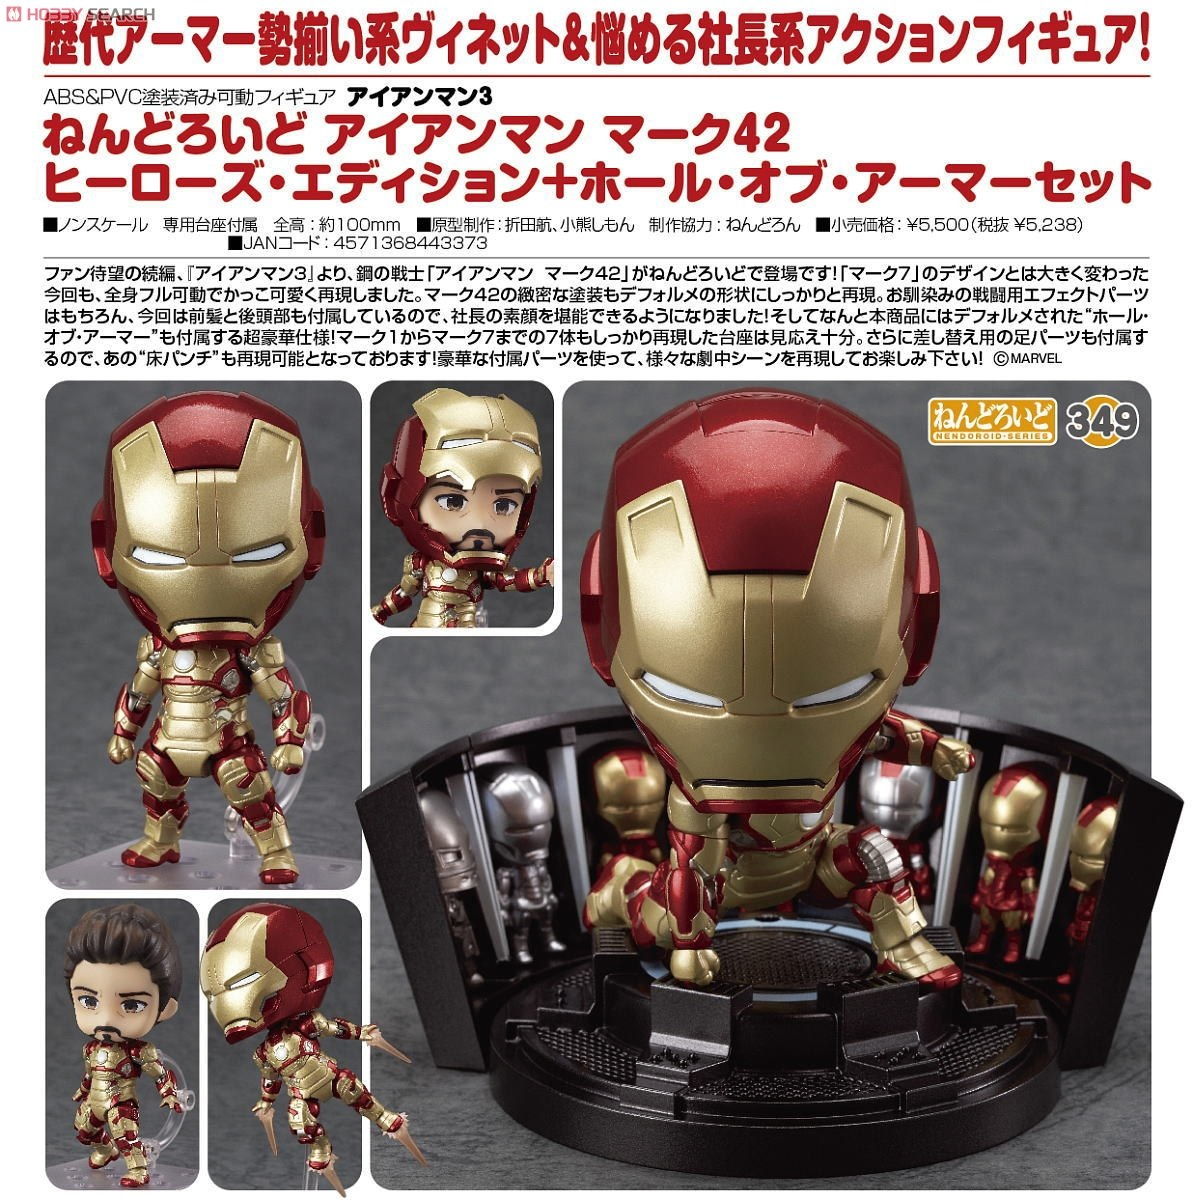 Nendoroid Iron Man Mark 42 Heroes Edition & Hall of Armor Set